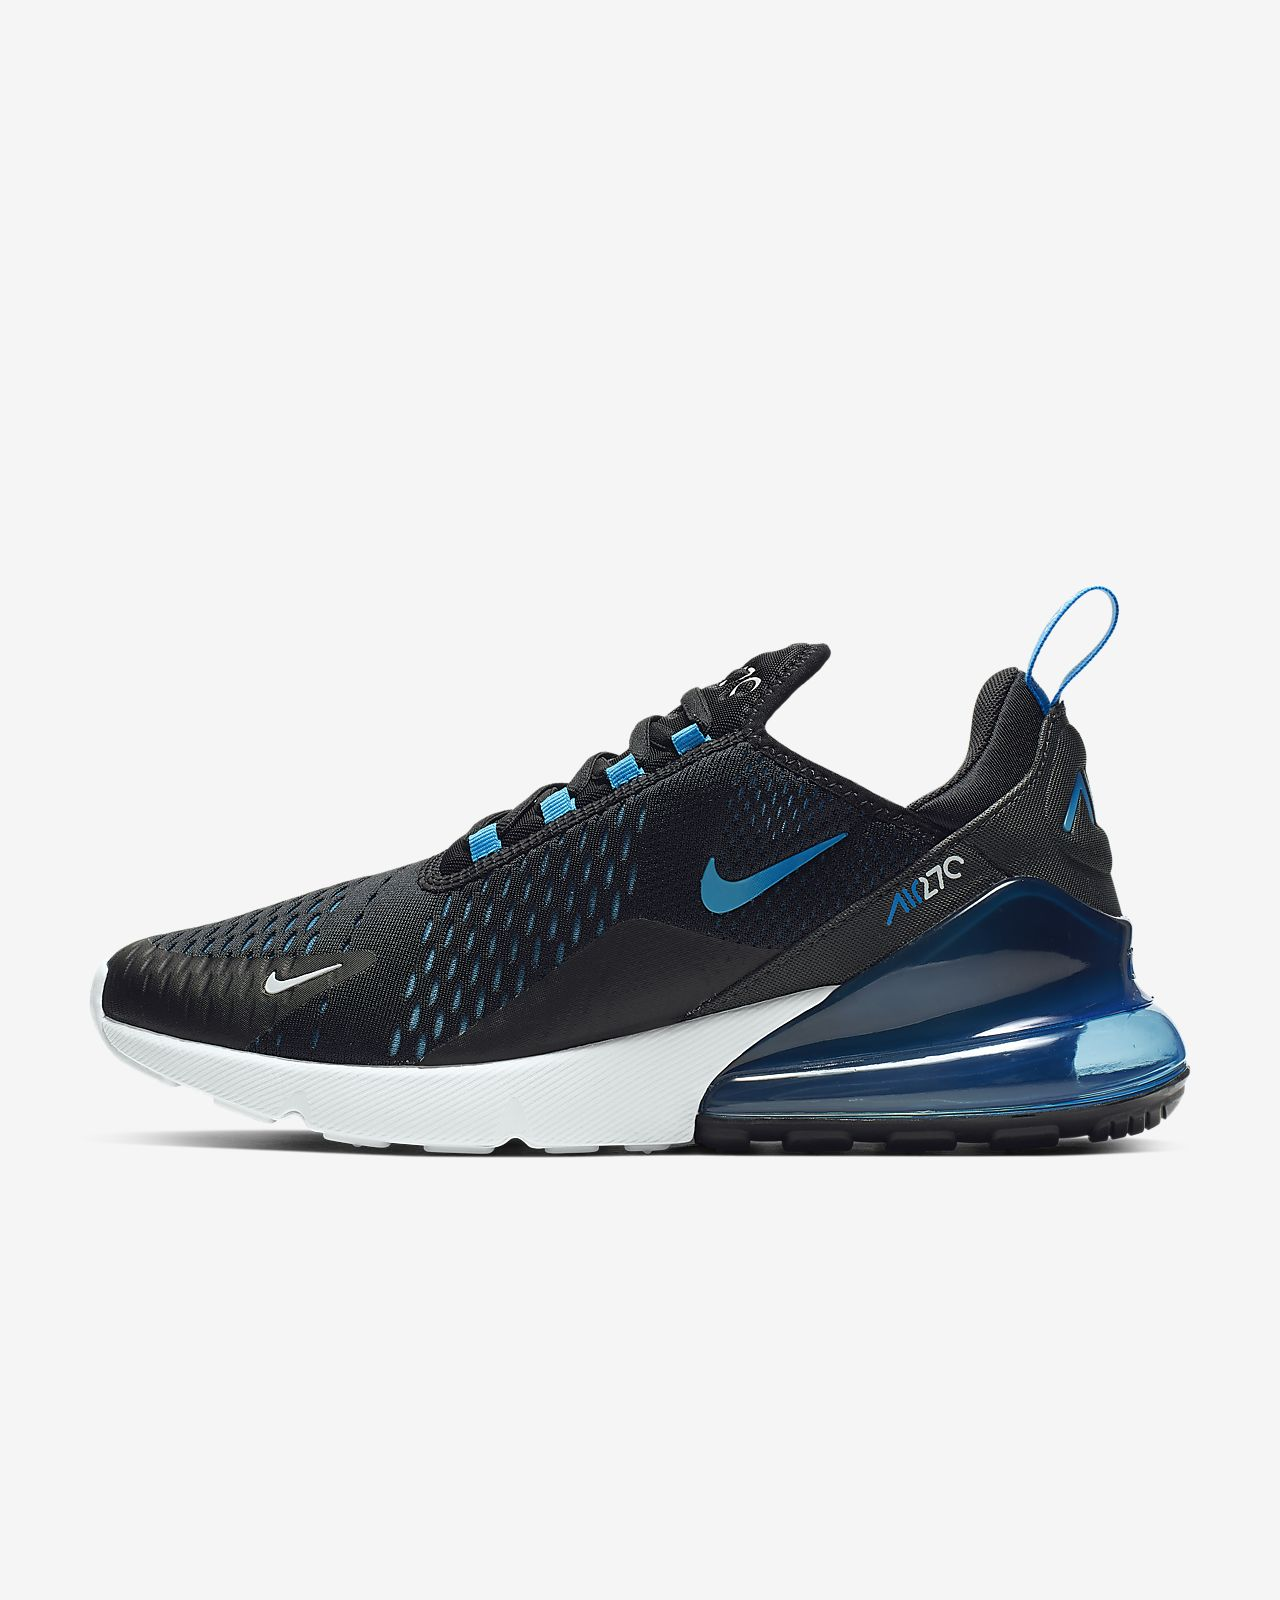 meet a999a 59839 Men s Shoe. Nike Air Max 270